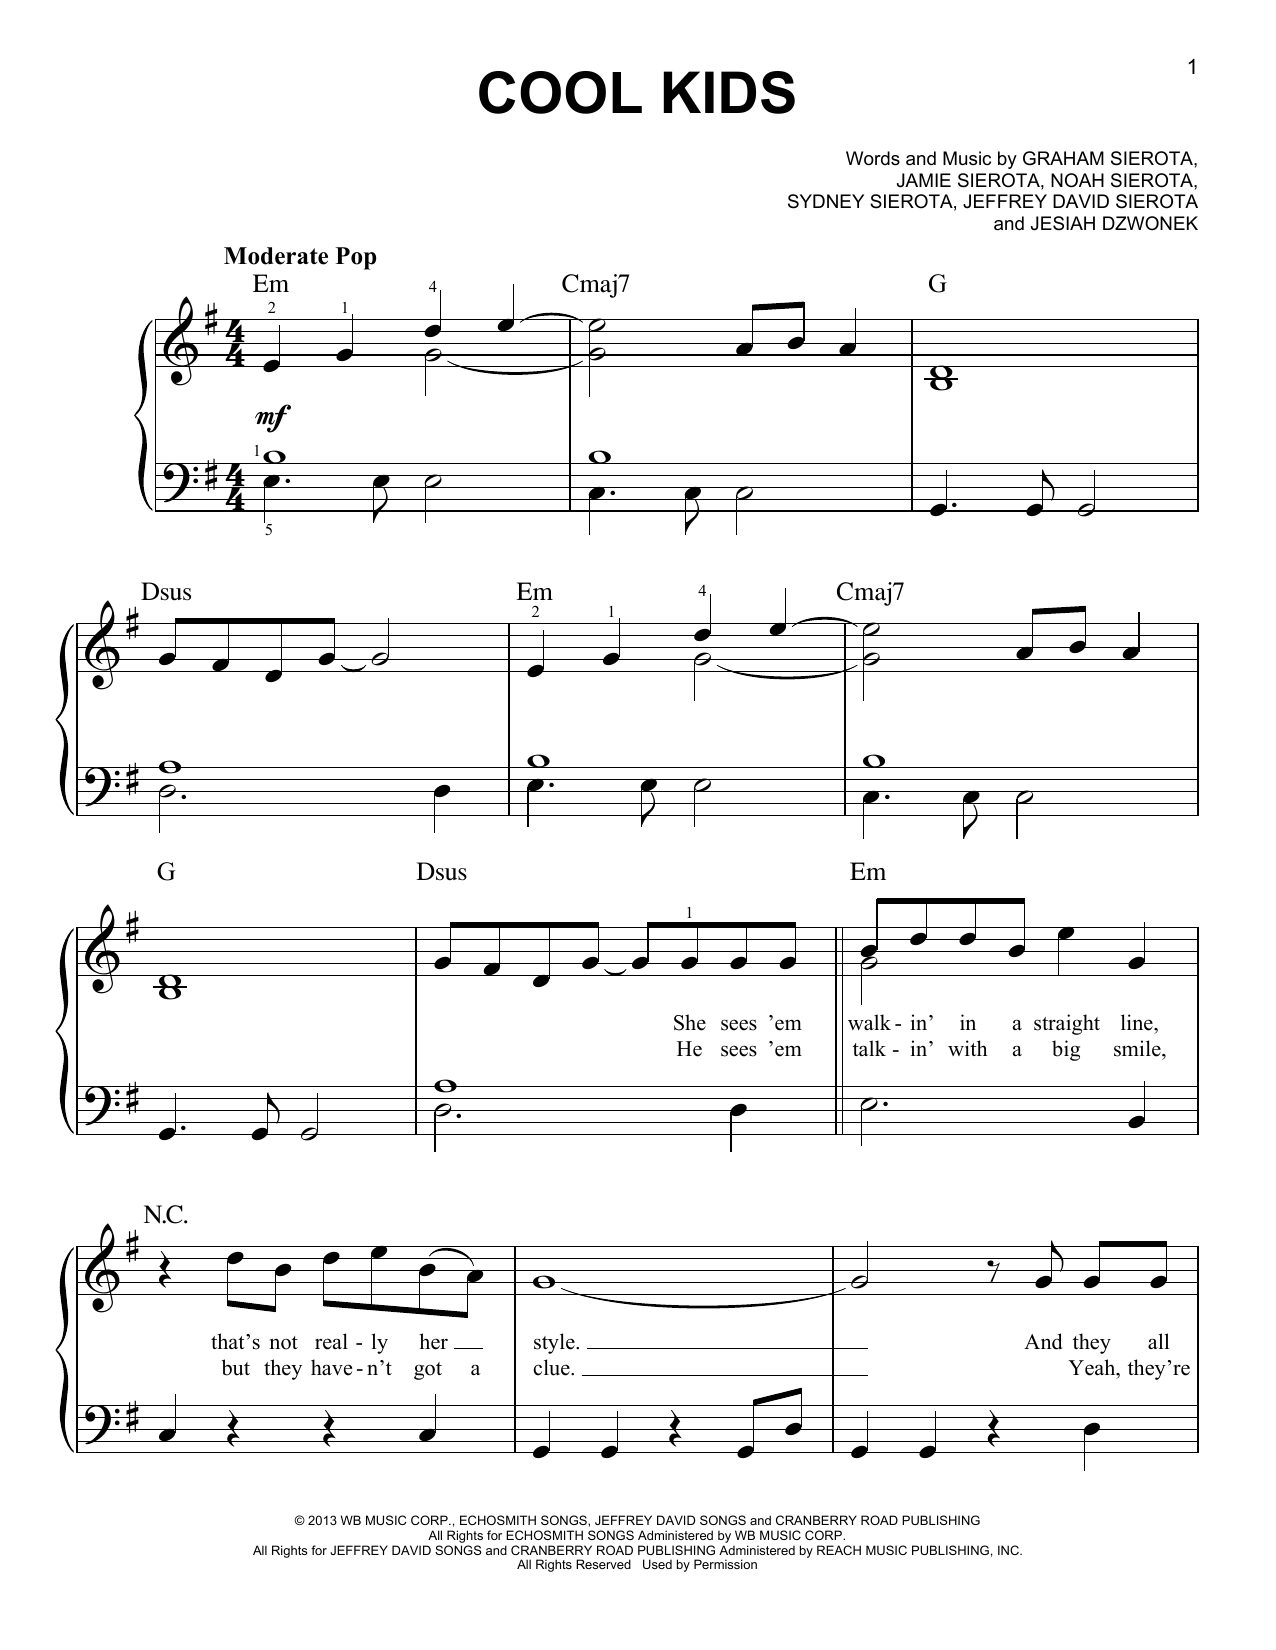 Sheet preview piano music pinterest sheet music direct easy sheet preview hexwebz Image collections